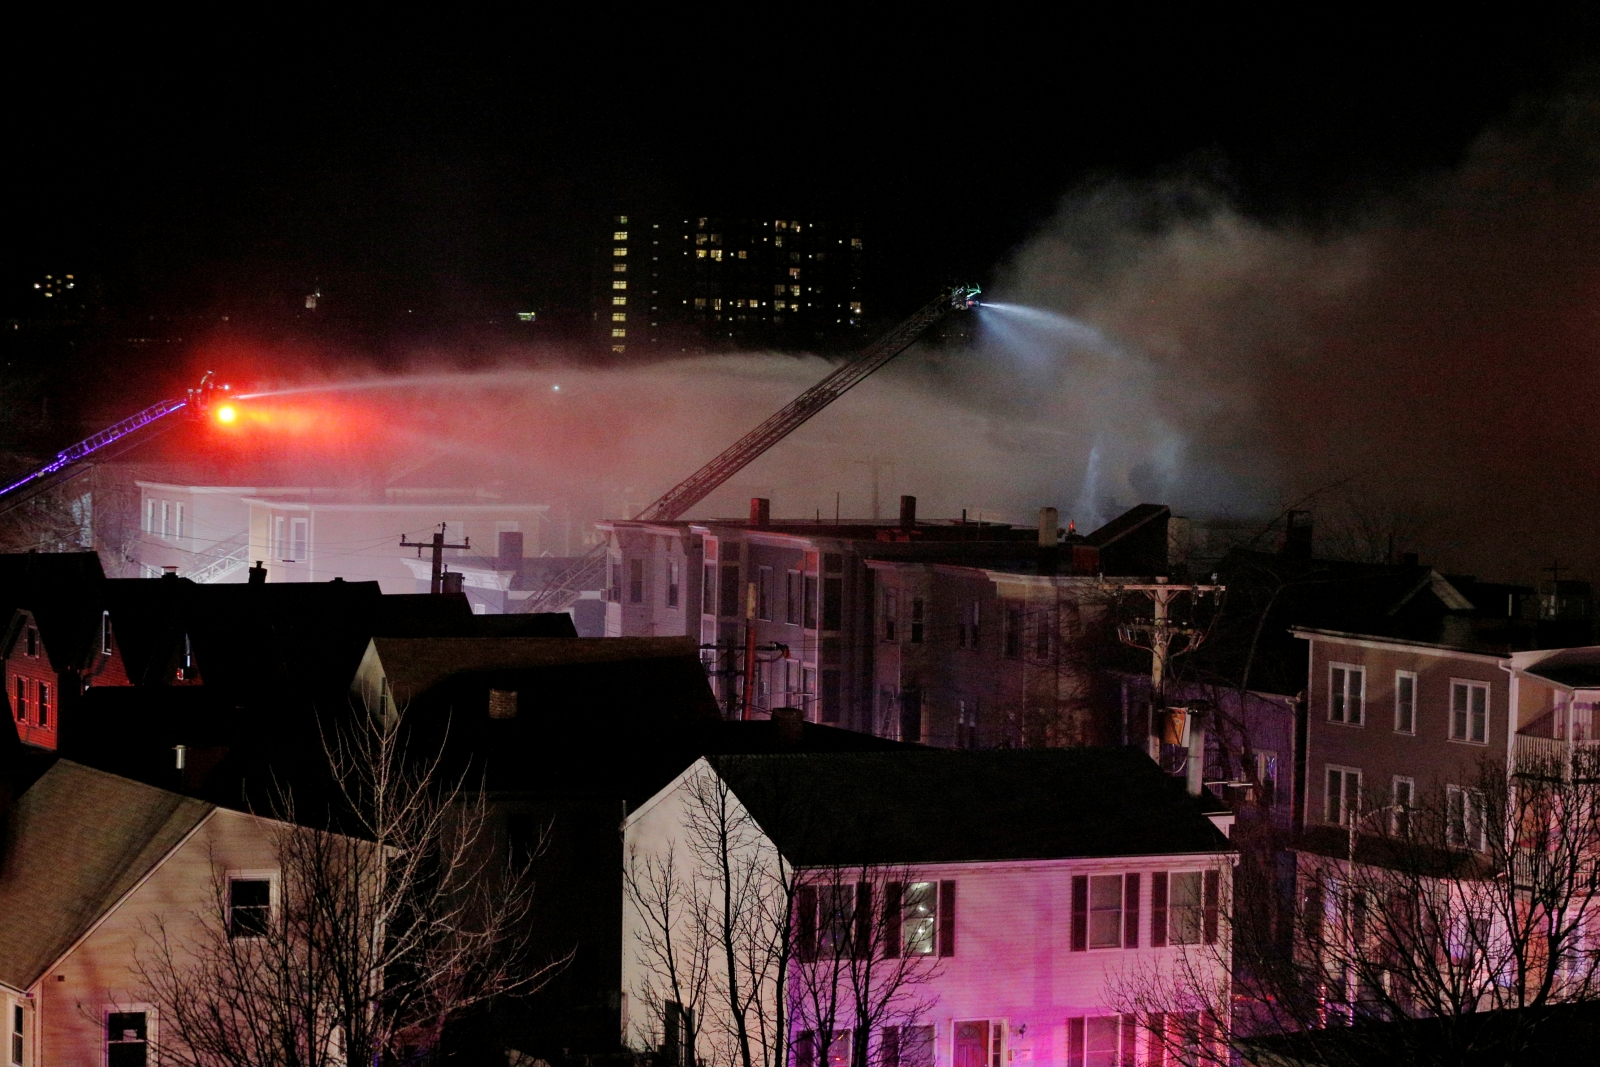 10-alarm fire engulfs buildings in Cambridge, Massachusetts